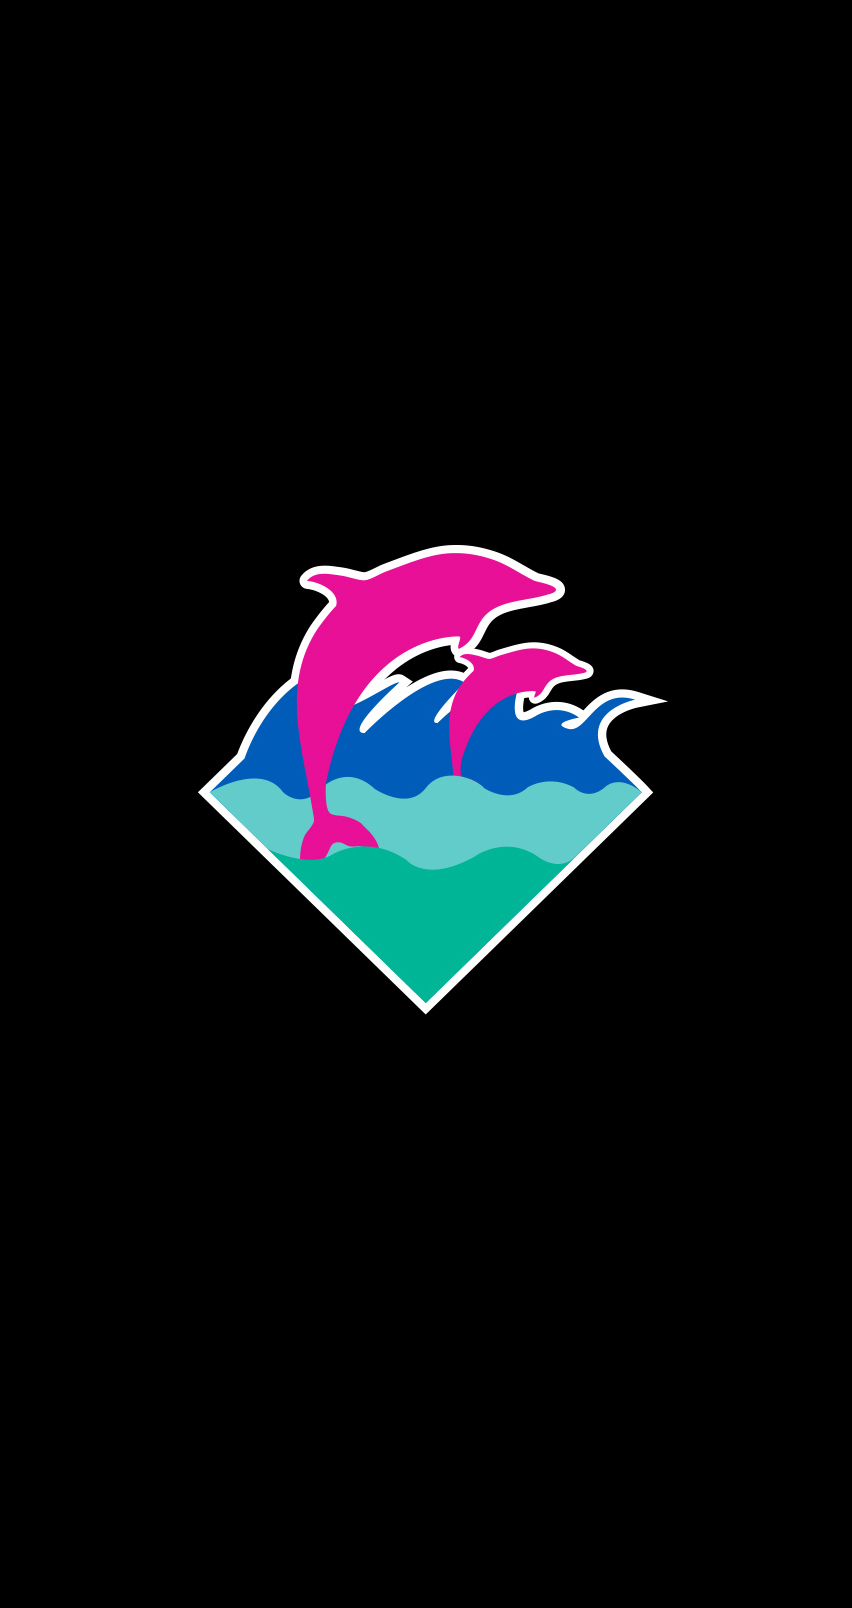 Live 3d Dolphin Wallpaper Download Pink Dolphin Logo Wallpaper Gallery